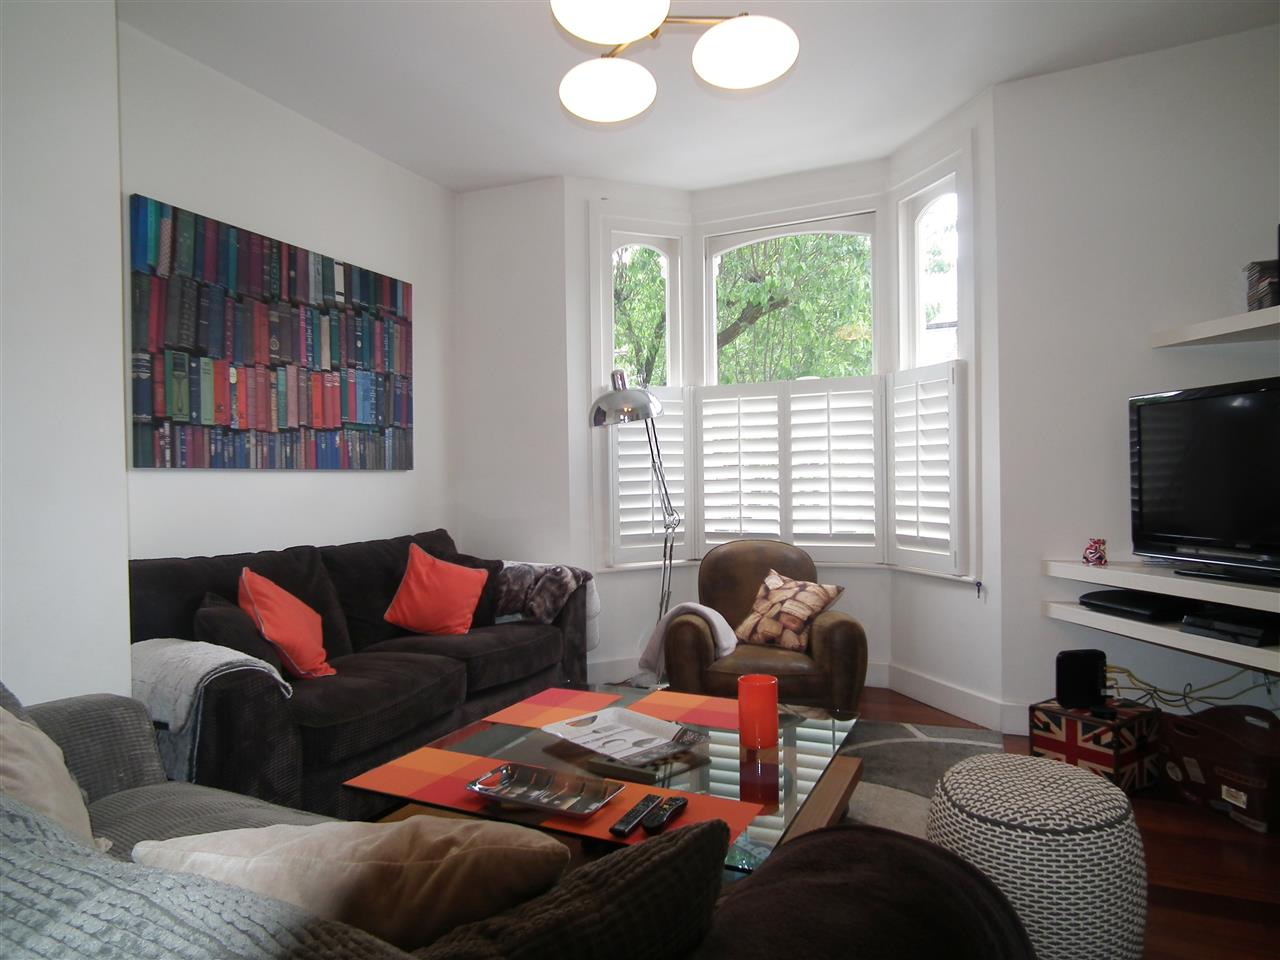 3 bed flat to rent in Hugo Road, London, N19